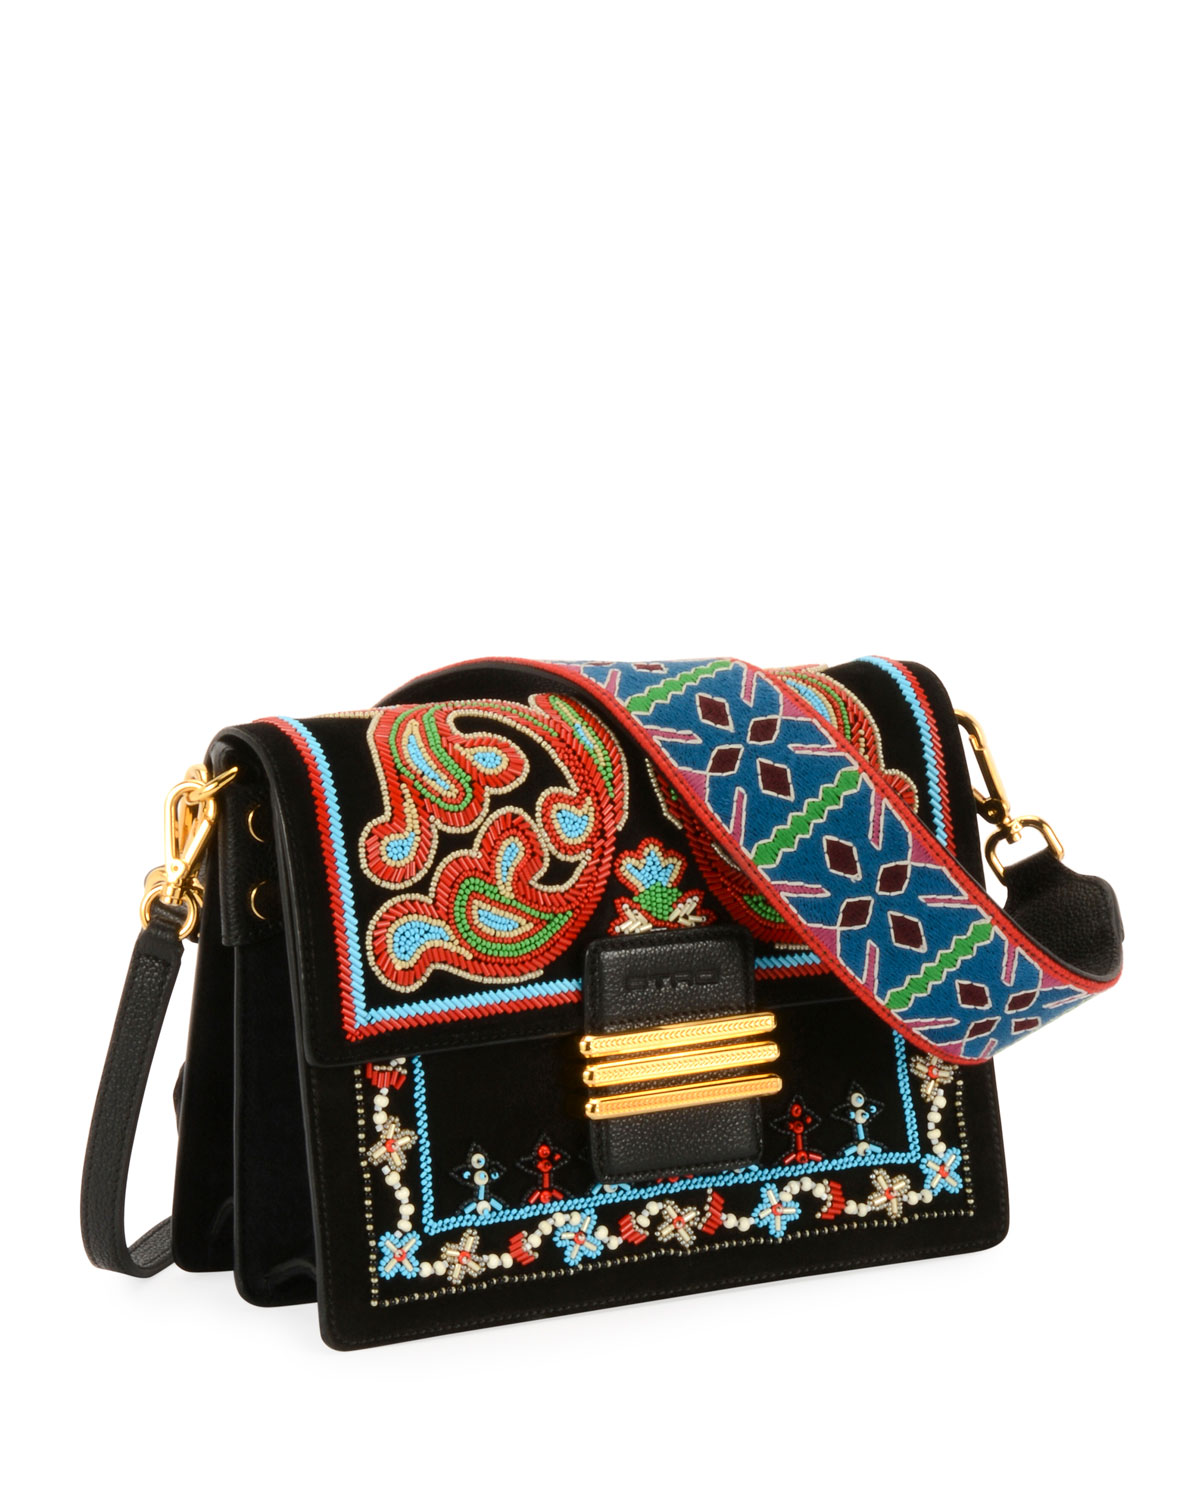 Bead-Embroidered Flap Shoulder Bag